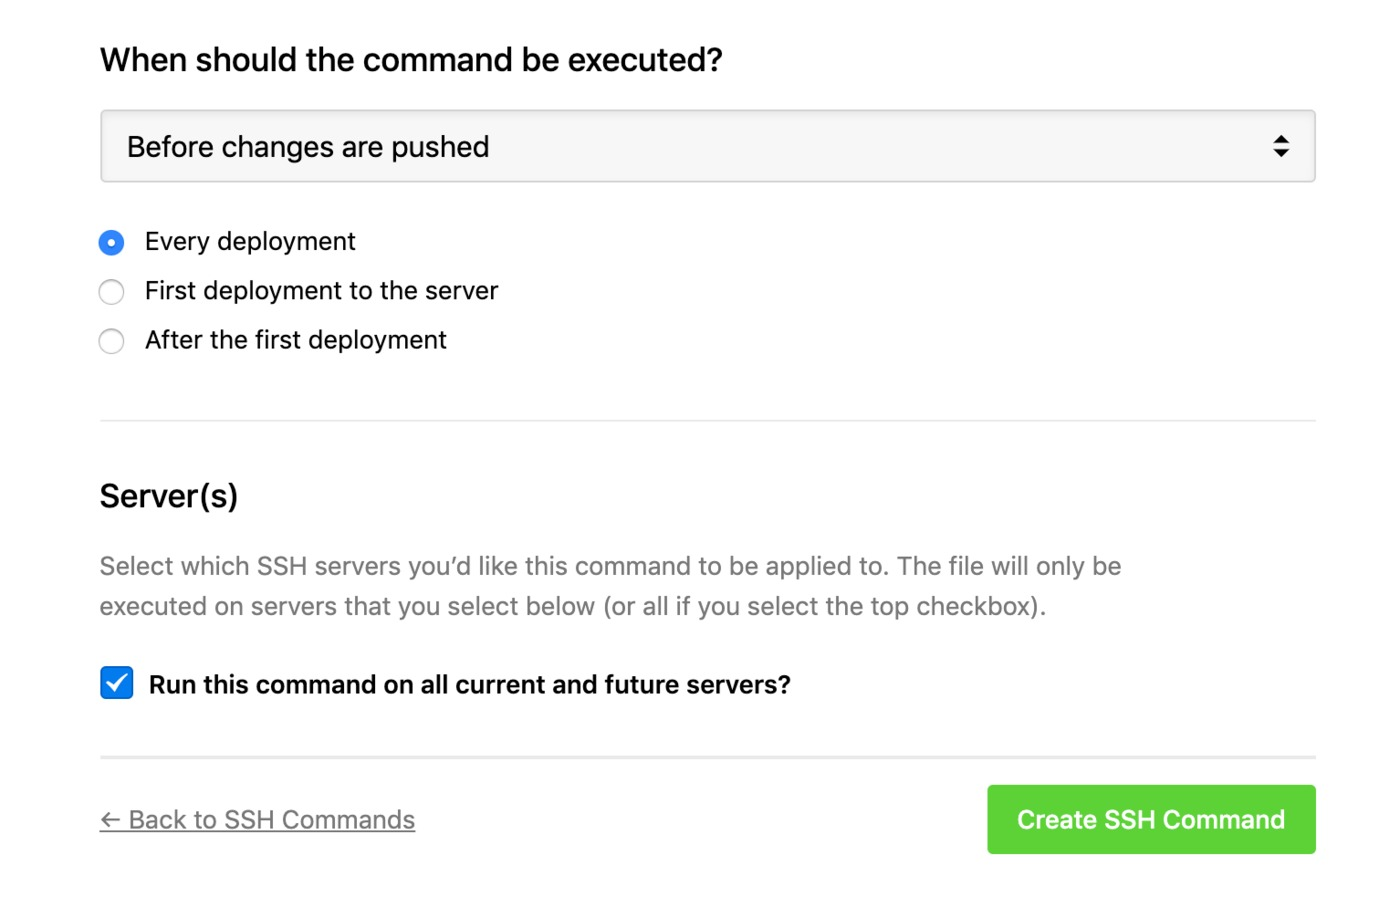 SSH commands - when to execute